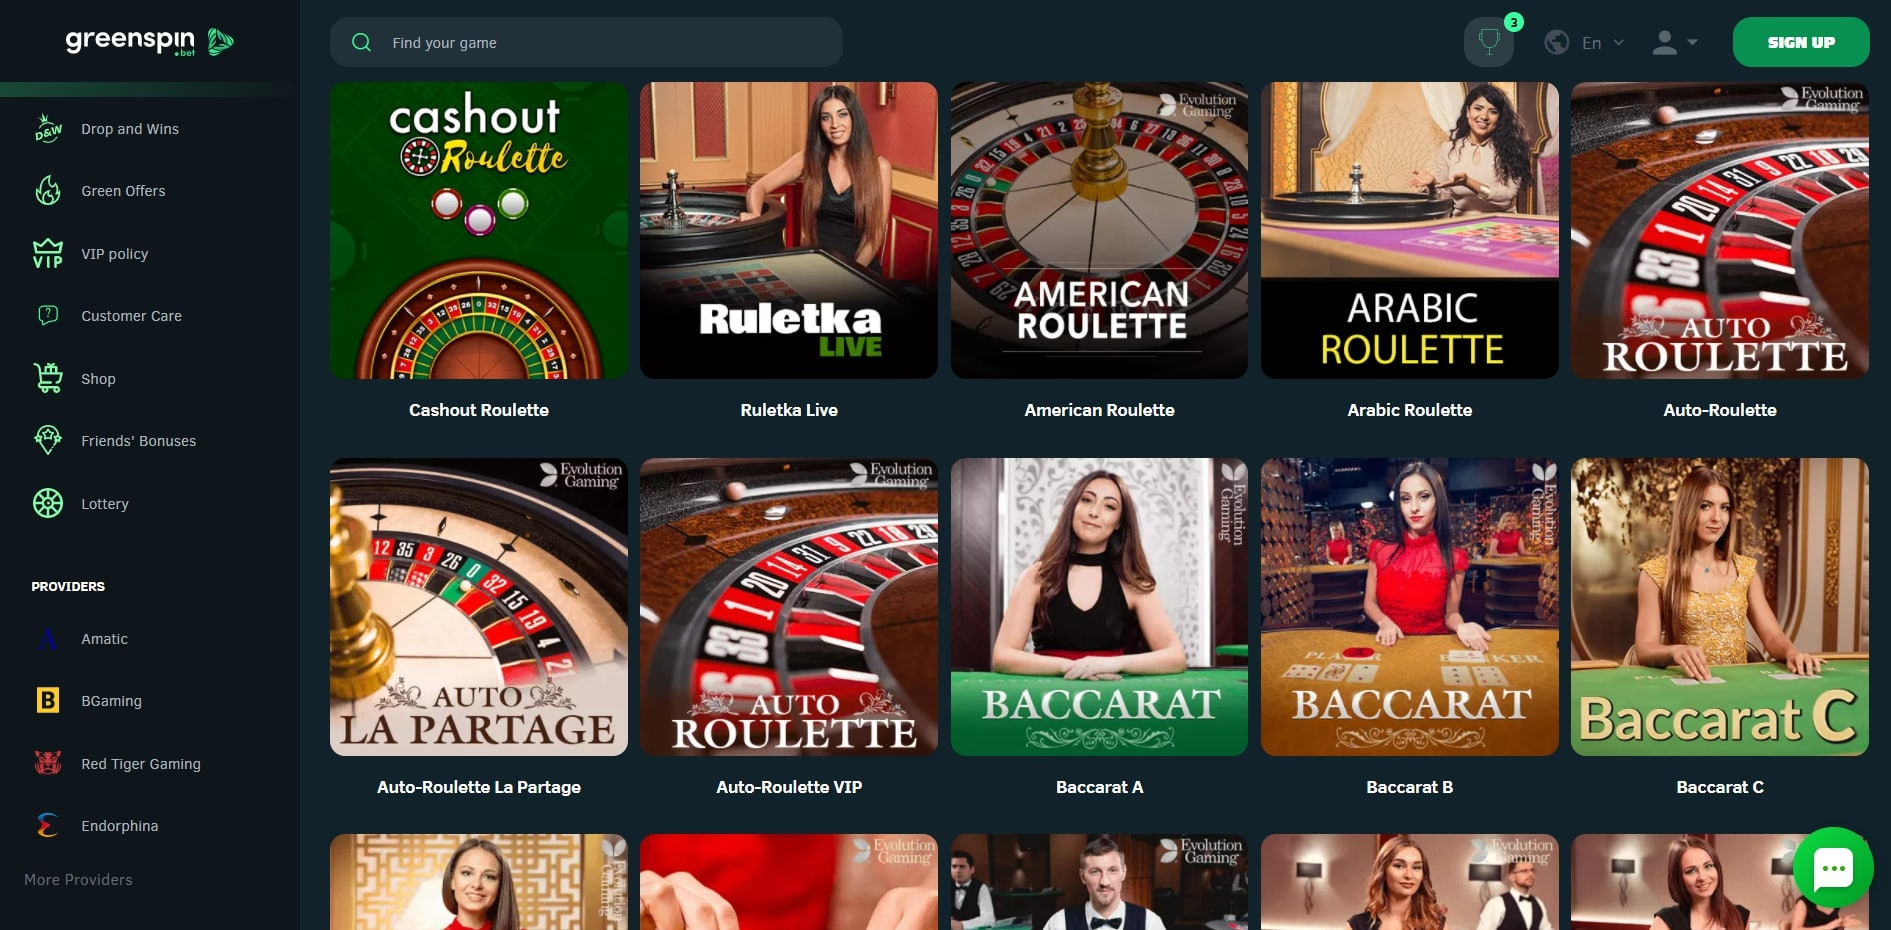 Greenspin Casino Live Dealer Games